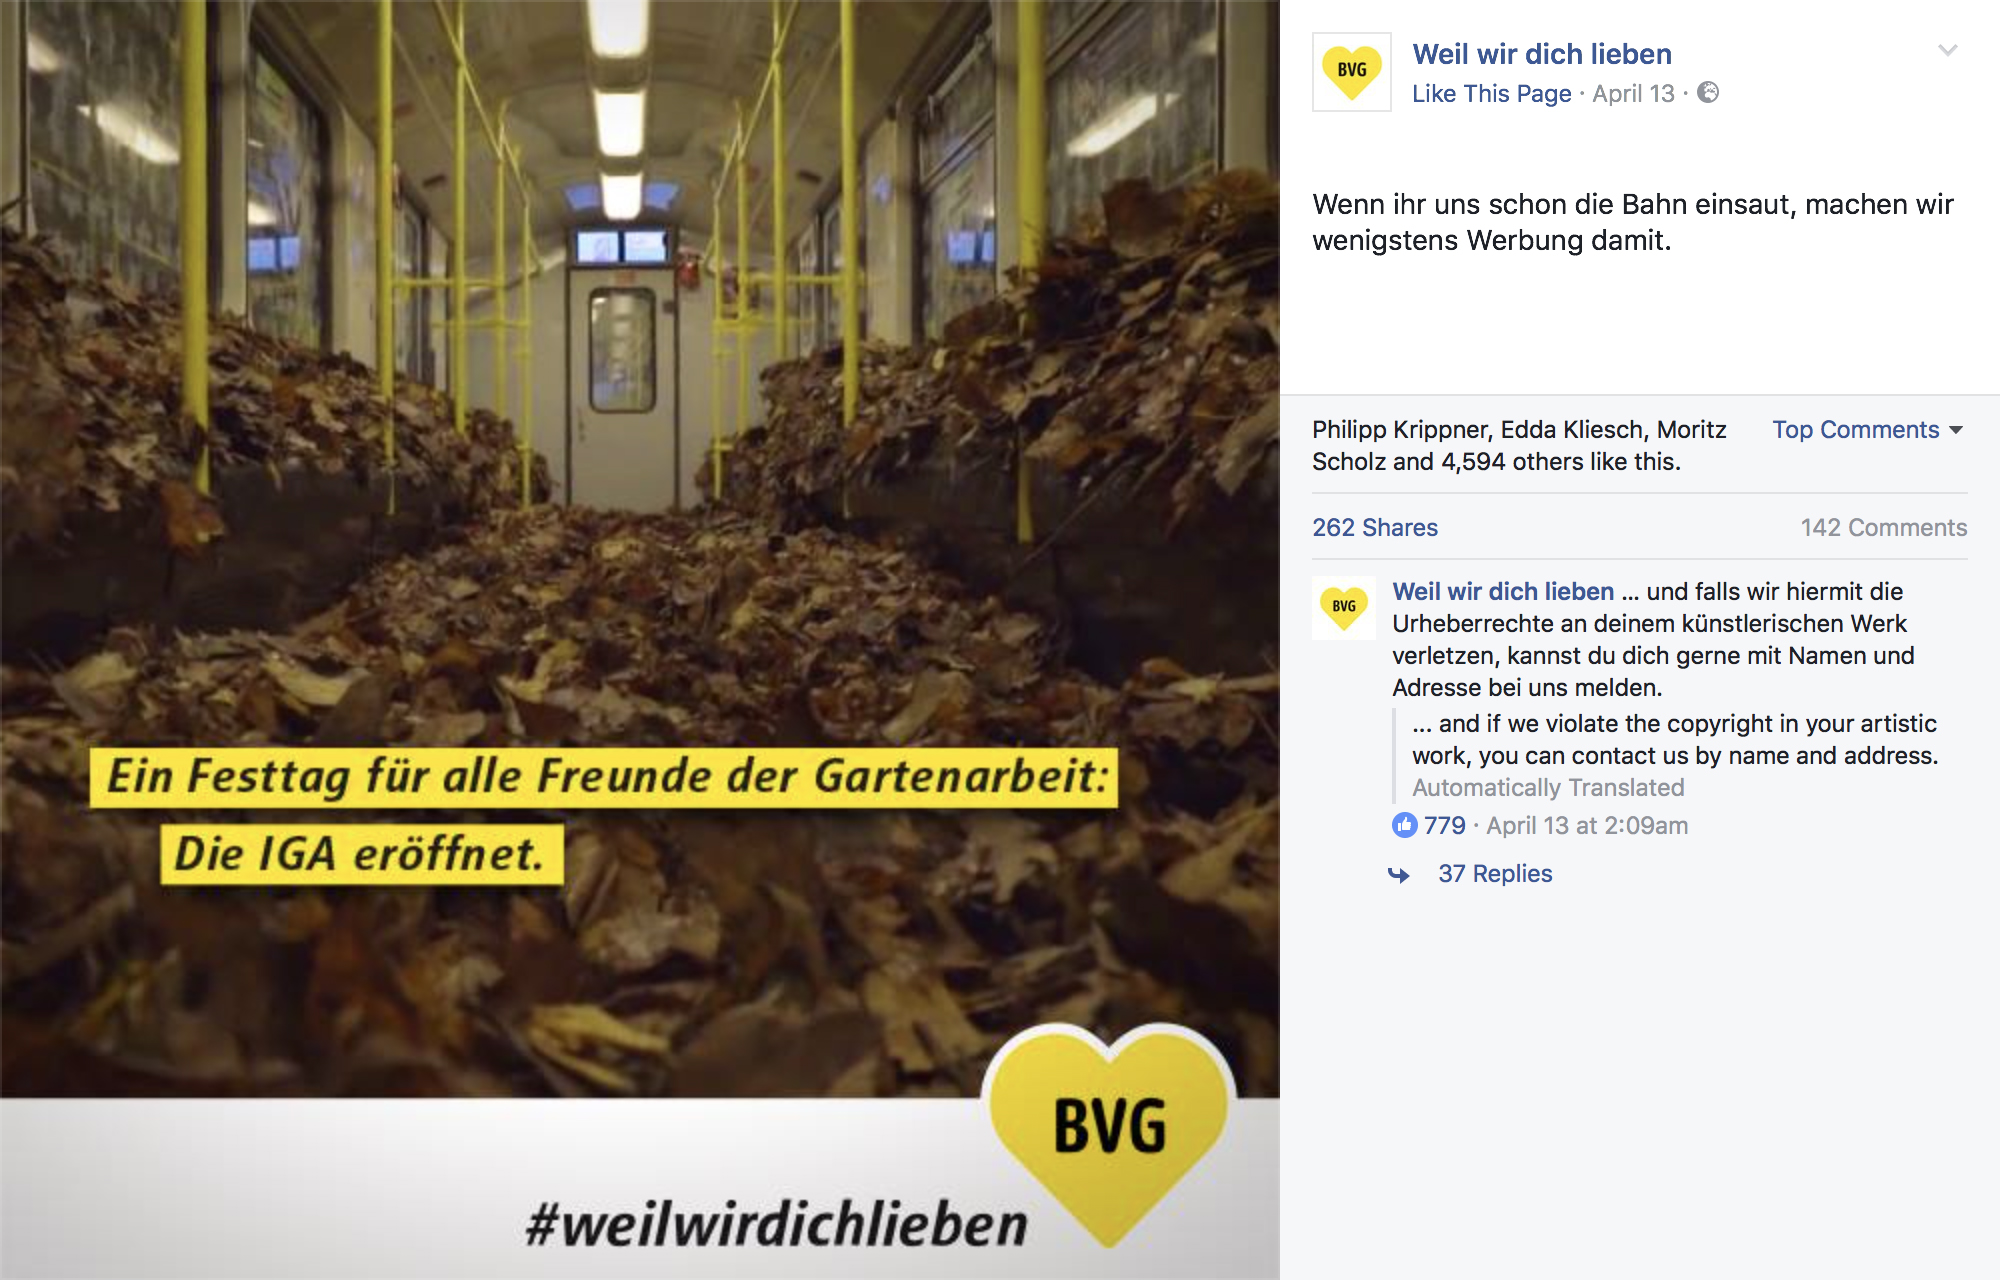 BVG Facebook Post promoting the opening of the IGA (the International Garden Exhibition) using an image from the TOY Crew video Leaf the Train